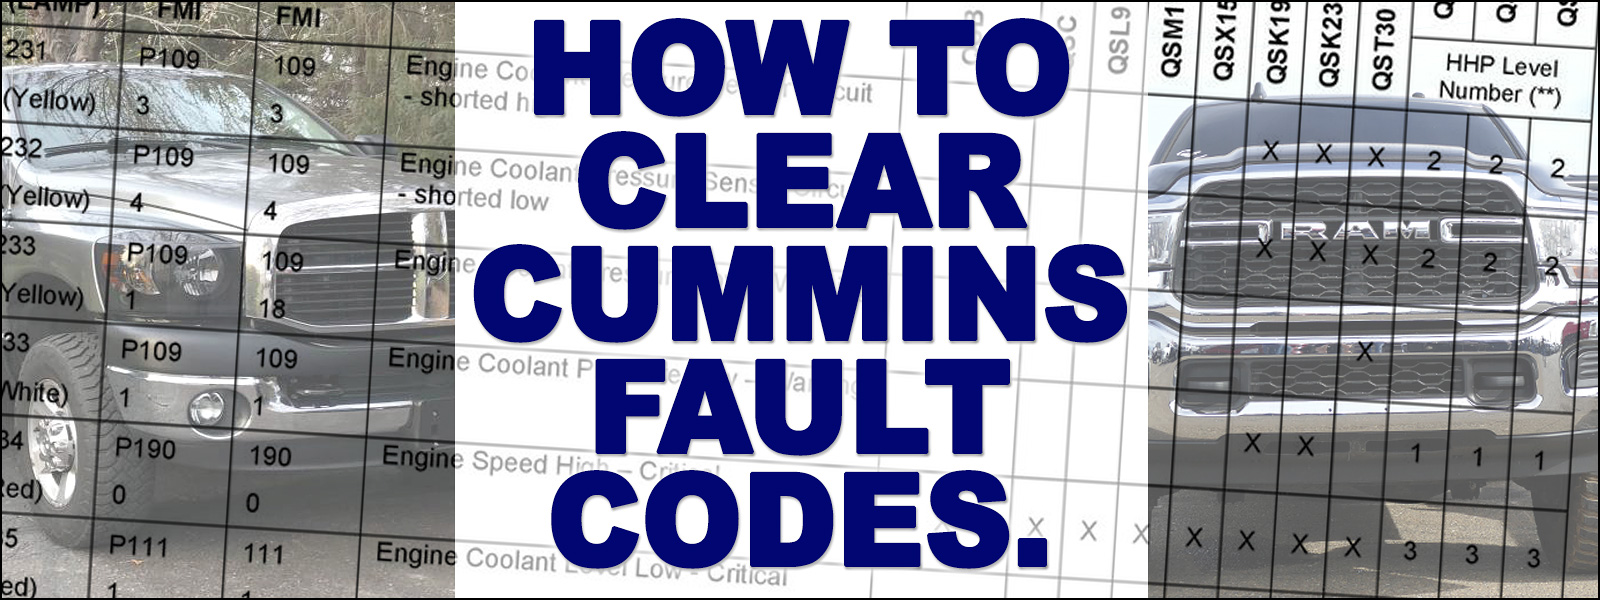 How to Clear Cummins Fault Codes